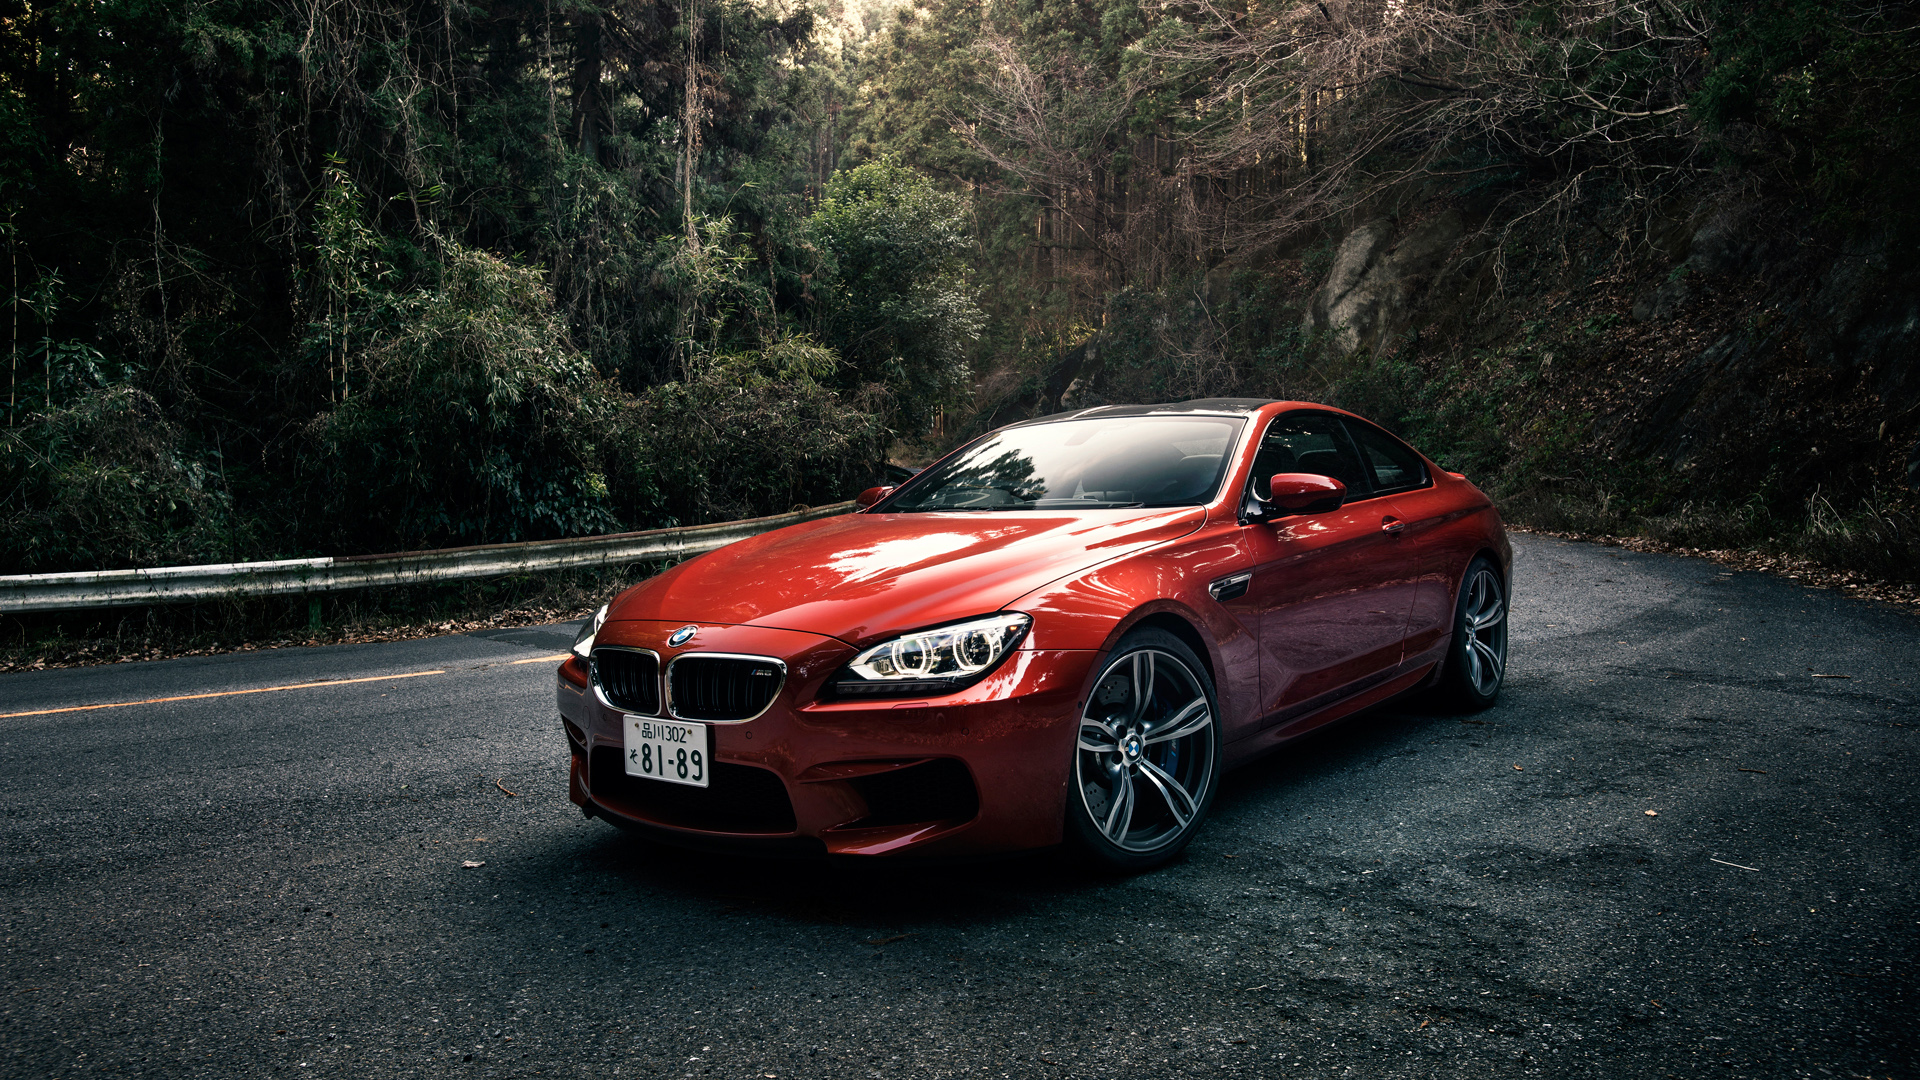 bmw m6 2 wallpaper | hd car wallpapers | id #3324